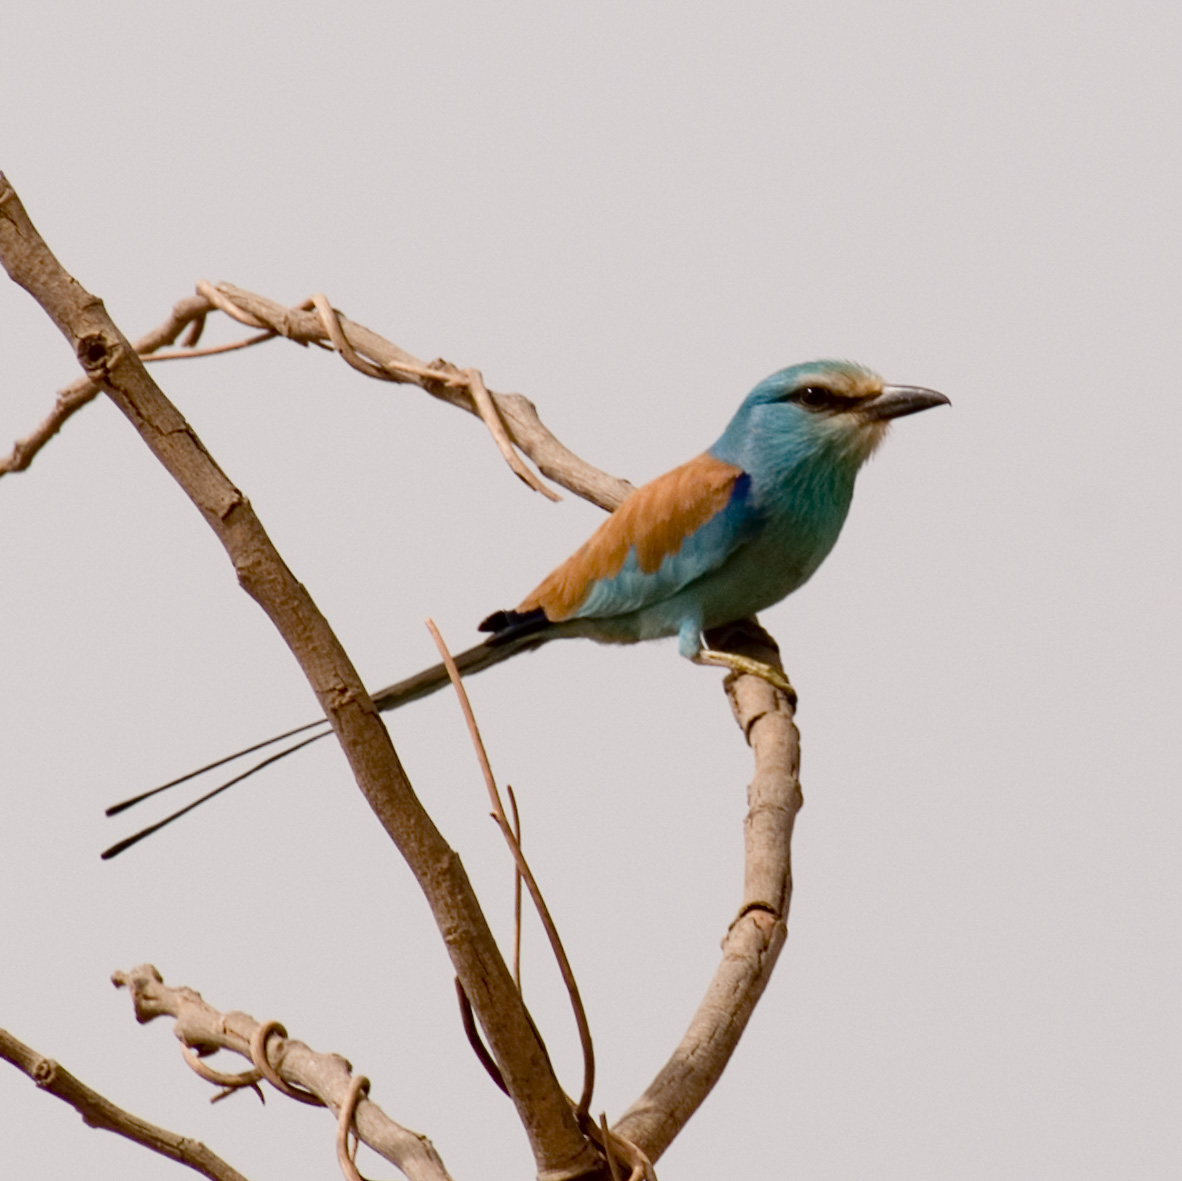 Abyssinian Roller, Gambia